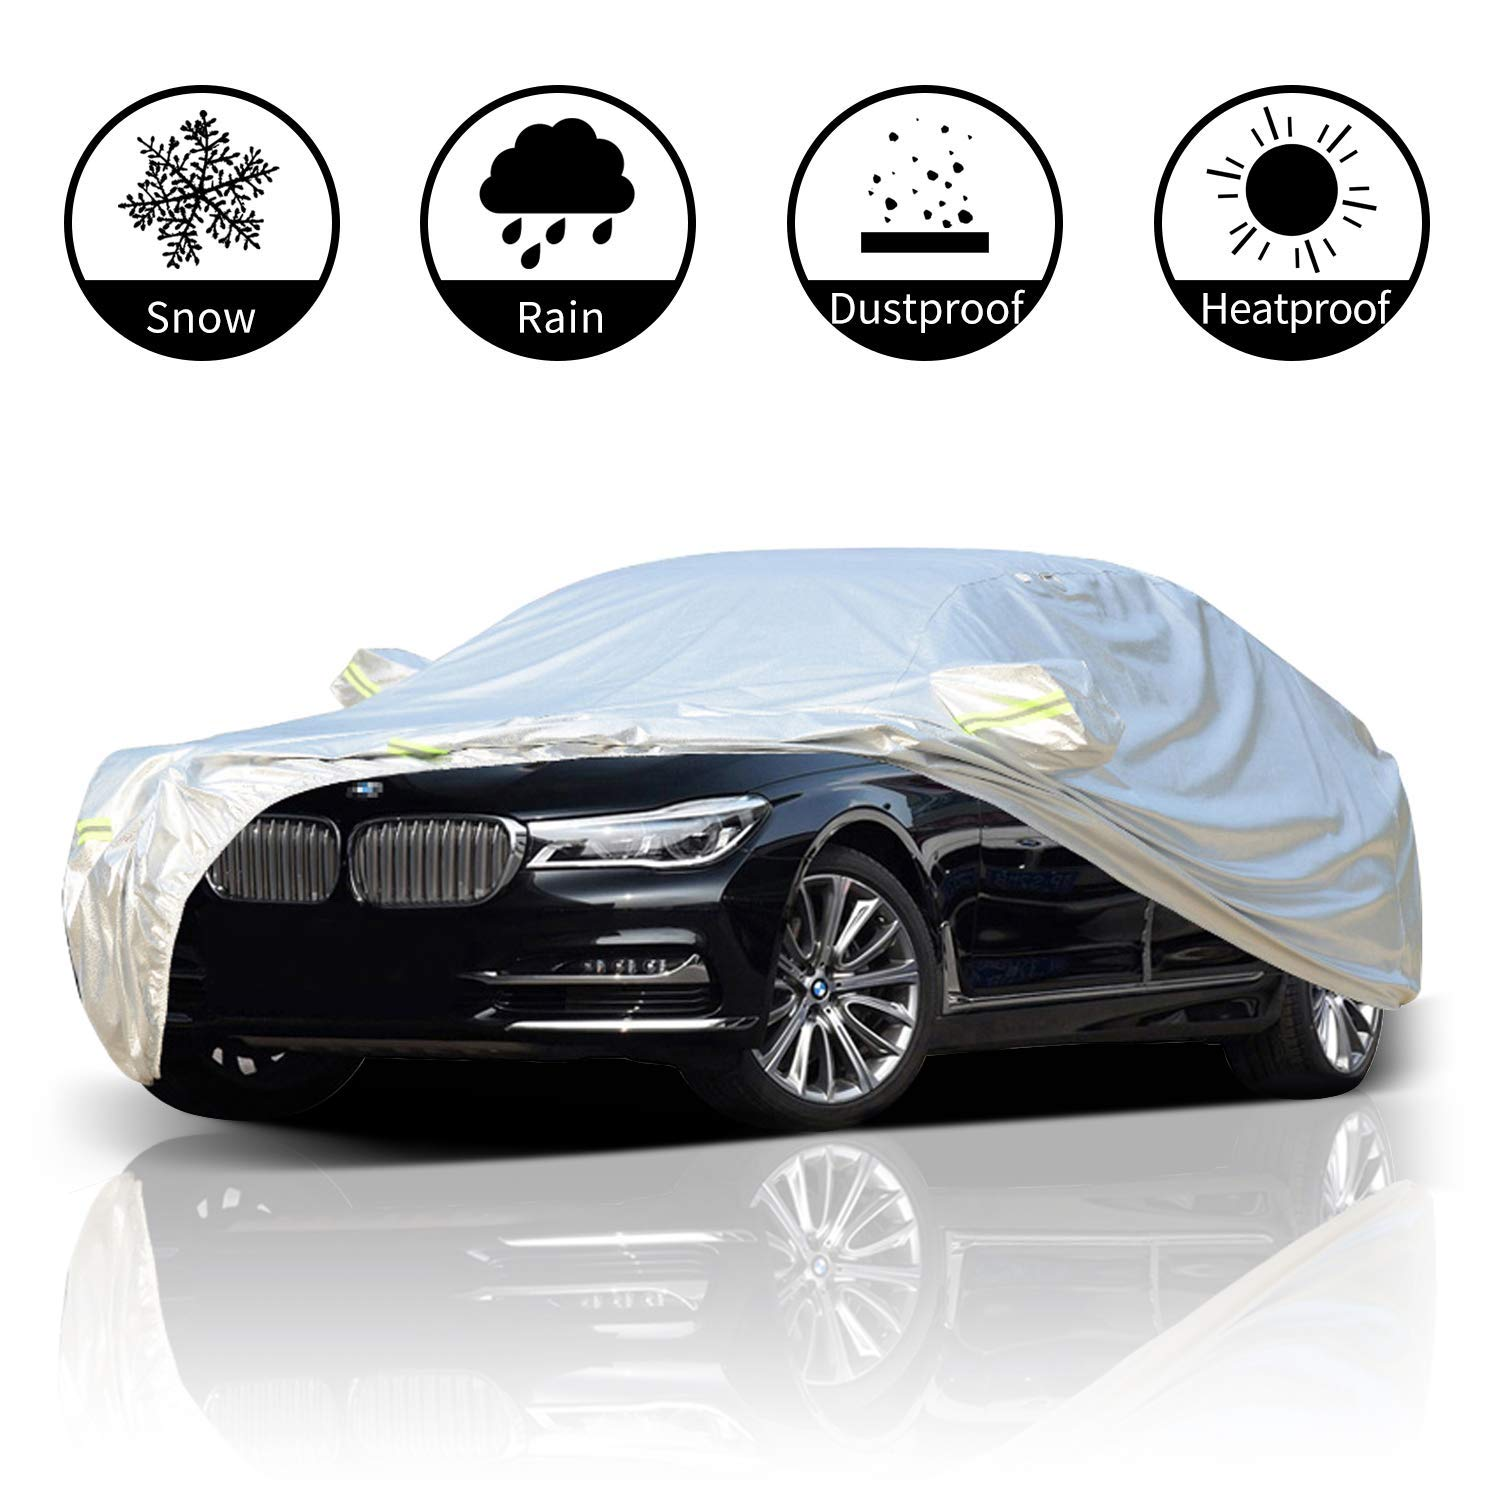 FLOWood Car Cover All Weather Waterproof Breathable Outdoor UV Protection Full Fit Medium Car XL:540 * 175 * 120cm